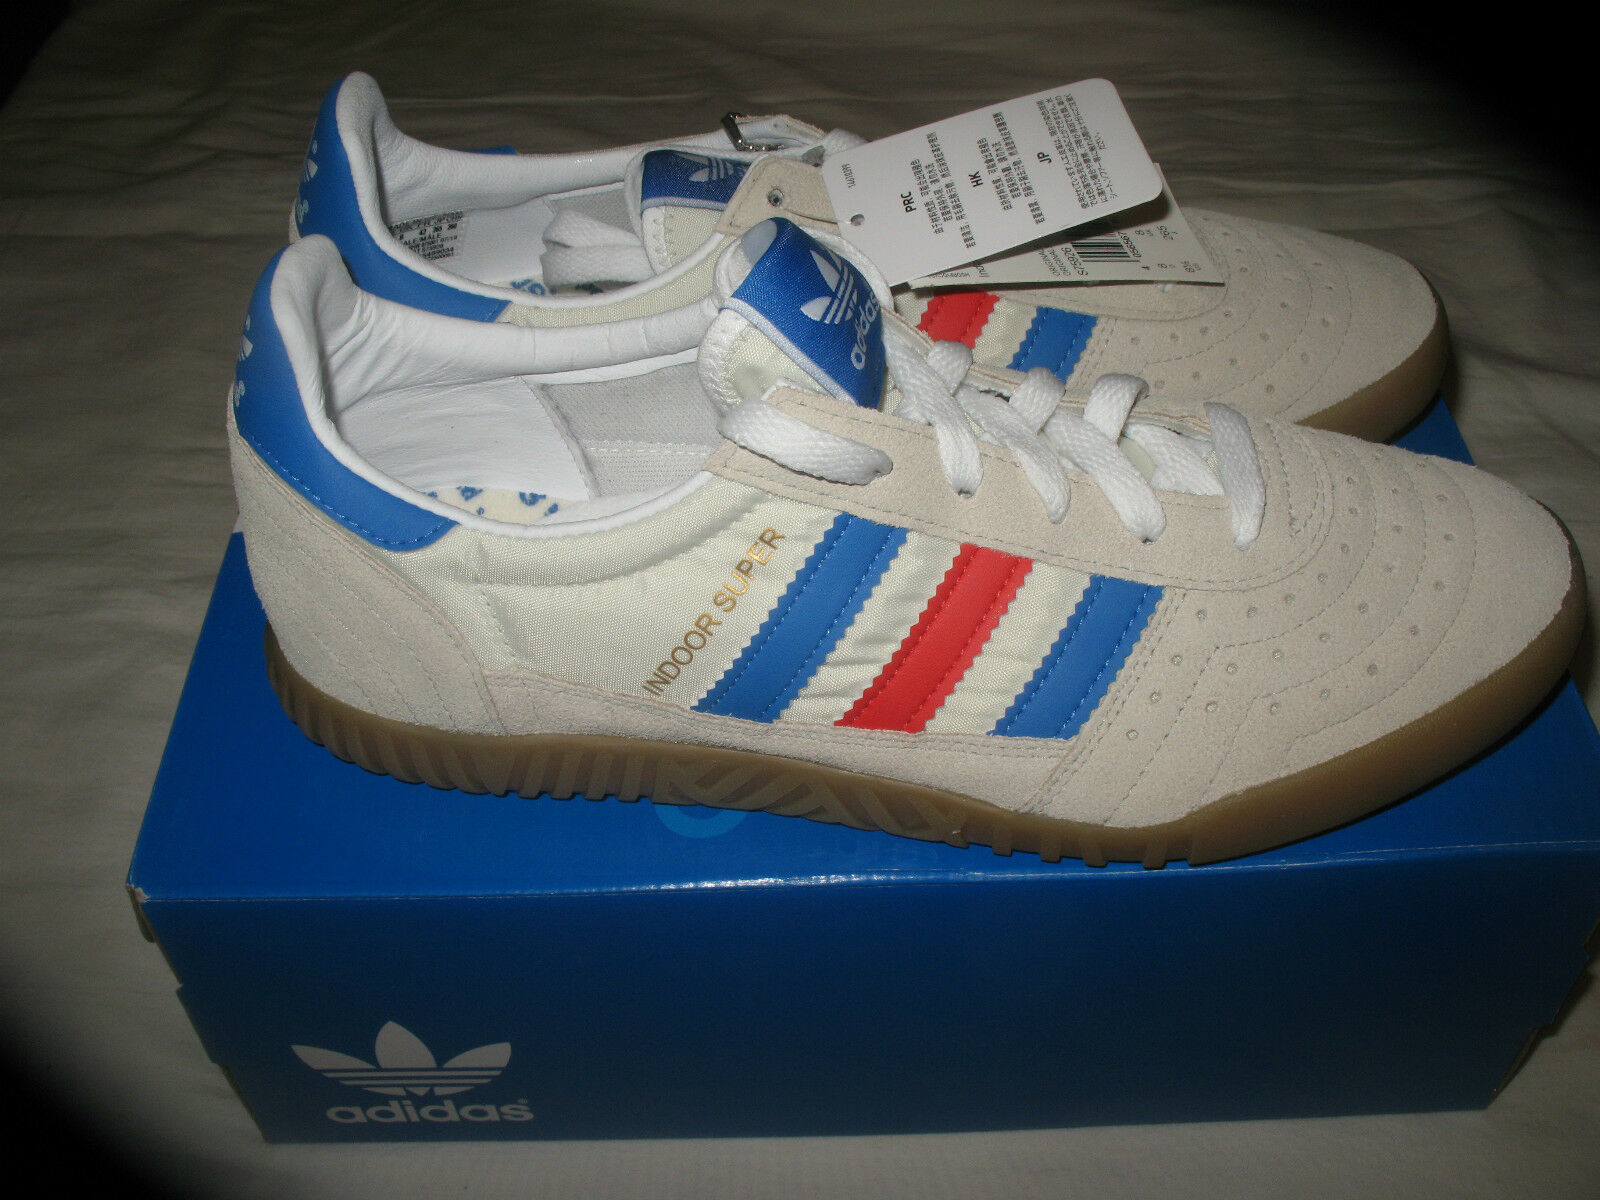 NEW ADIDAS ORIGINALS Indoor S75926 Super SPZL Spezial US 8 S75926 Indoor SOLD OUT 21f130